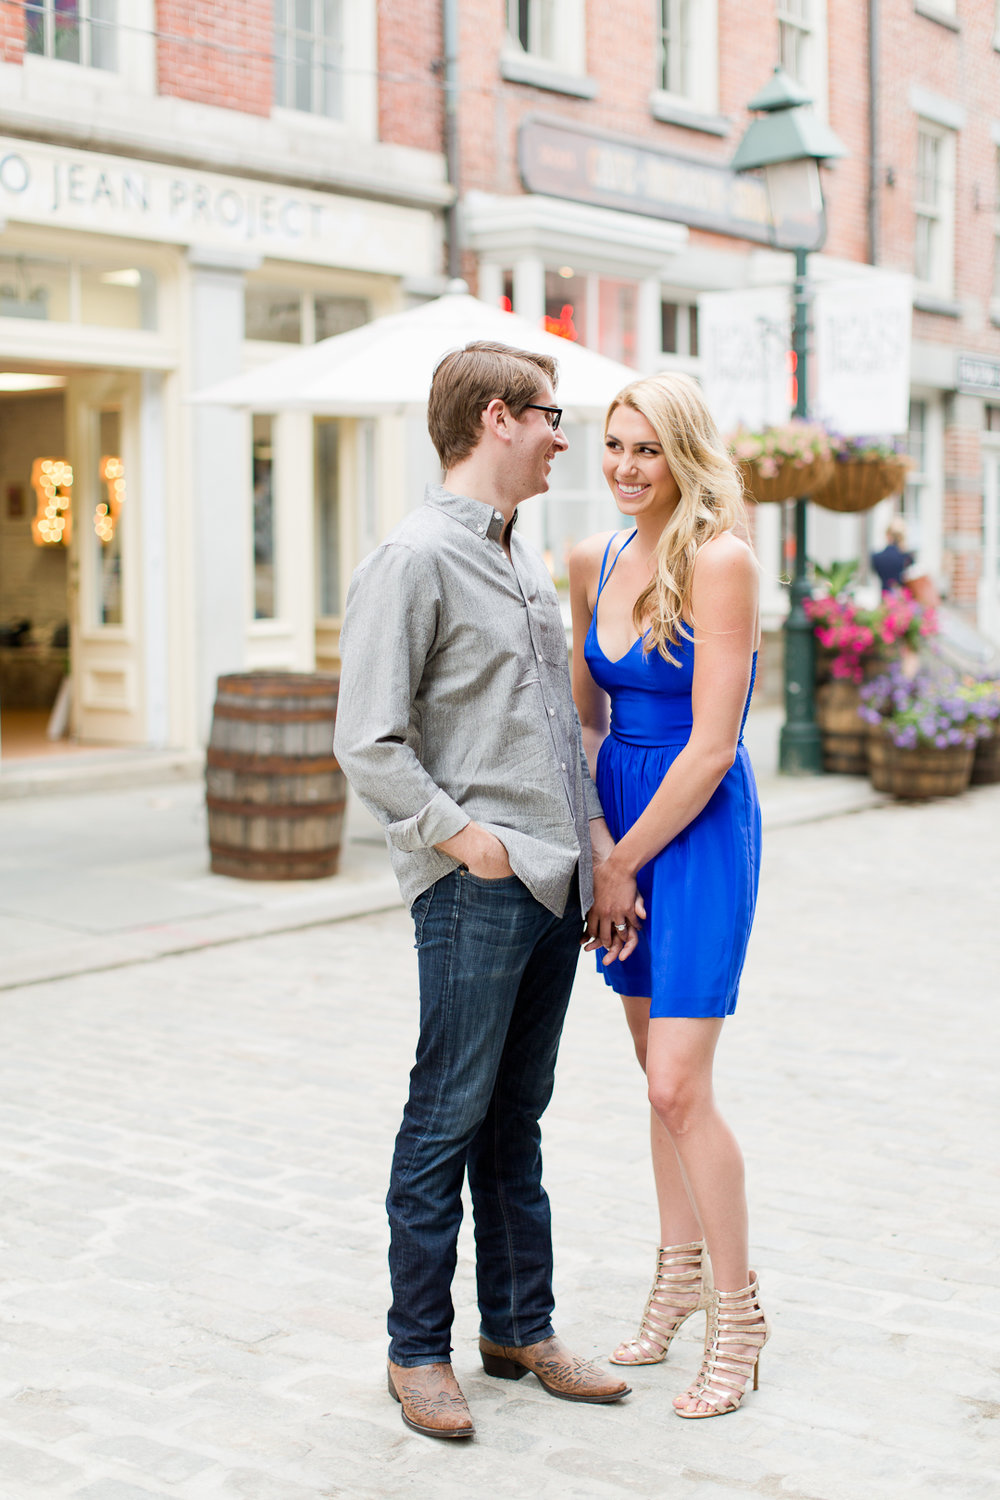 Melissa Kruse Photography - Kelley & Billy Engagement Photos-39.jpg